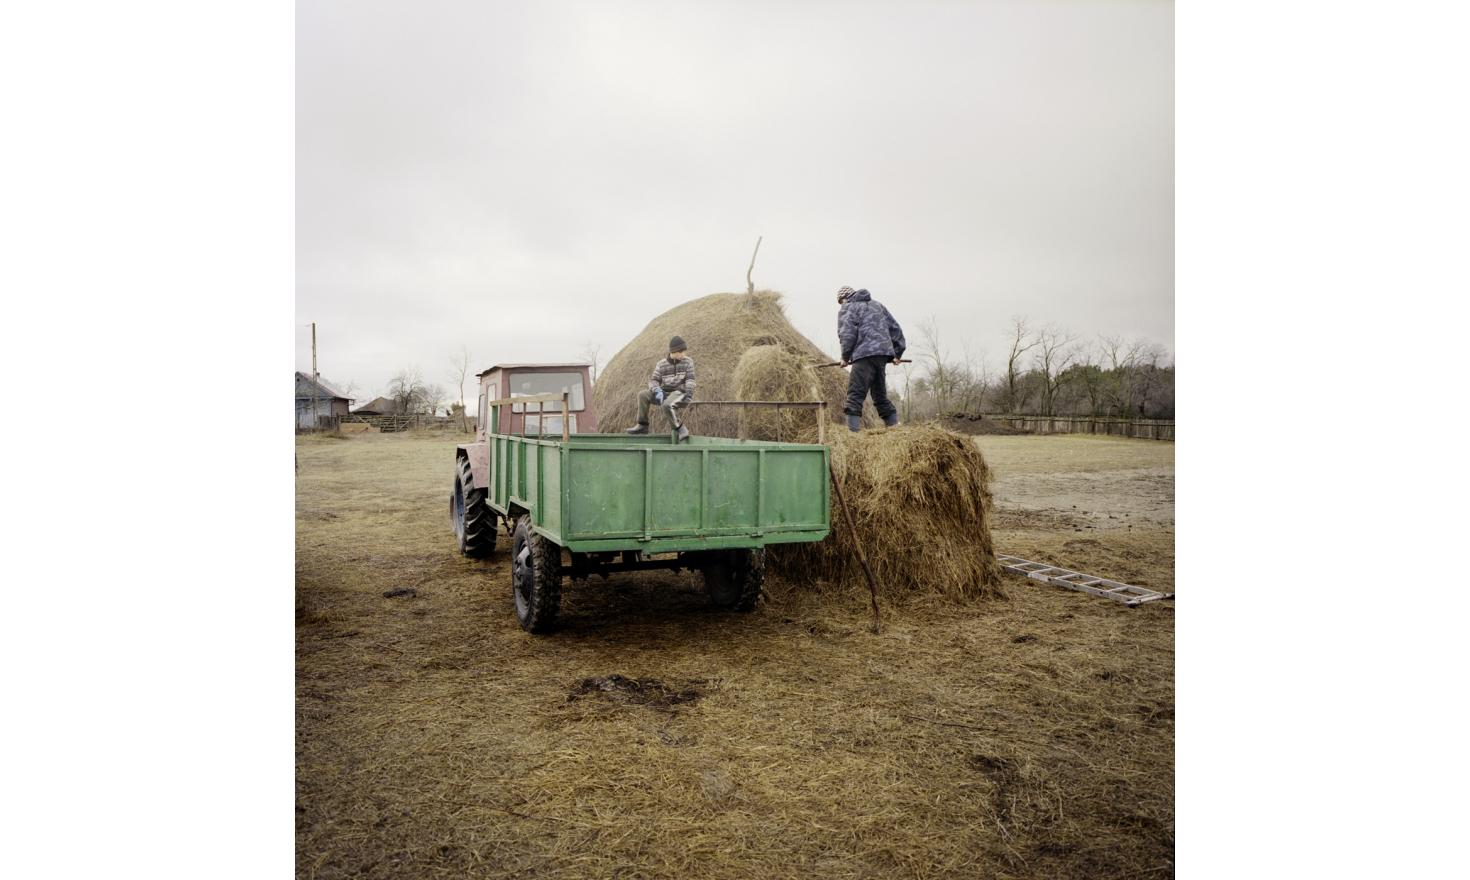 In Rosetti village, young people are loading hay.